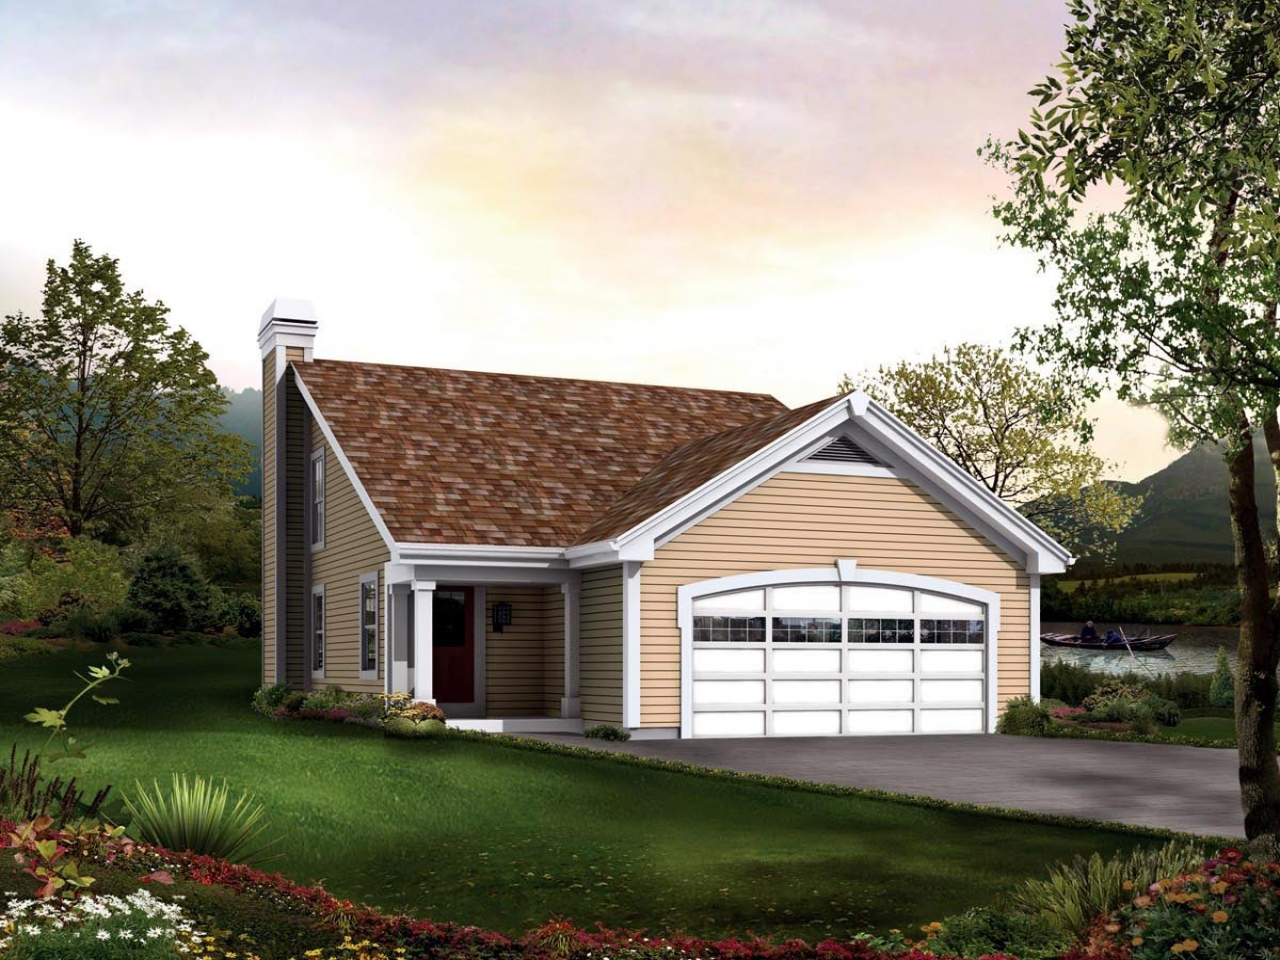 Ranch House Plans With Attached Garage on house with side load garage, ranch home plans with garage, ranch house plans with tandem garage, ranch house blueprints, ranch house plans with detached garage, house plans with breezeway to garage, pool house with garage, ranch style garage, ranch house plans with 4 car garage, hillside house plans front garage, ranch house addition over garage, bungalow house plans with detached garage, ranch house with three car garage, brick house with garage, ranch style house plans, l-shaped ranch with garage, l-shaped house with garage, ranch house floor plans with 3 car garage, building plans for attached garage, ranch with side garage,